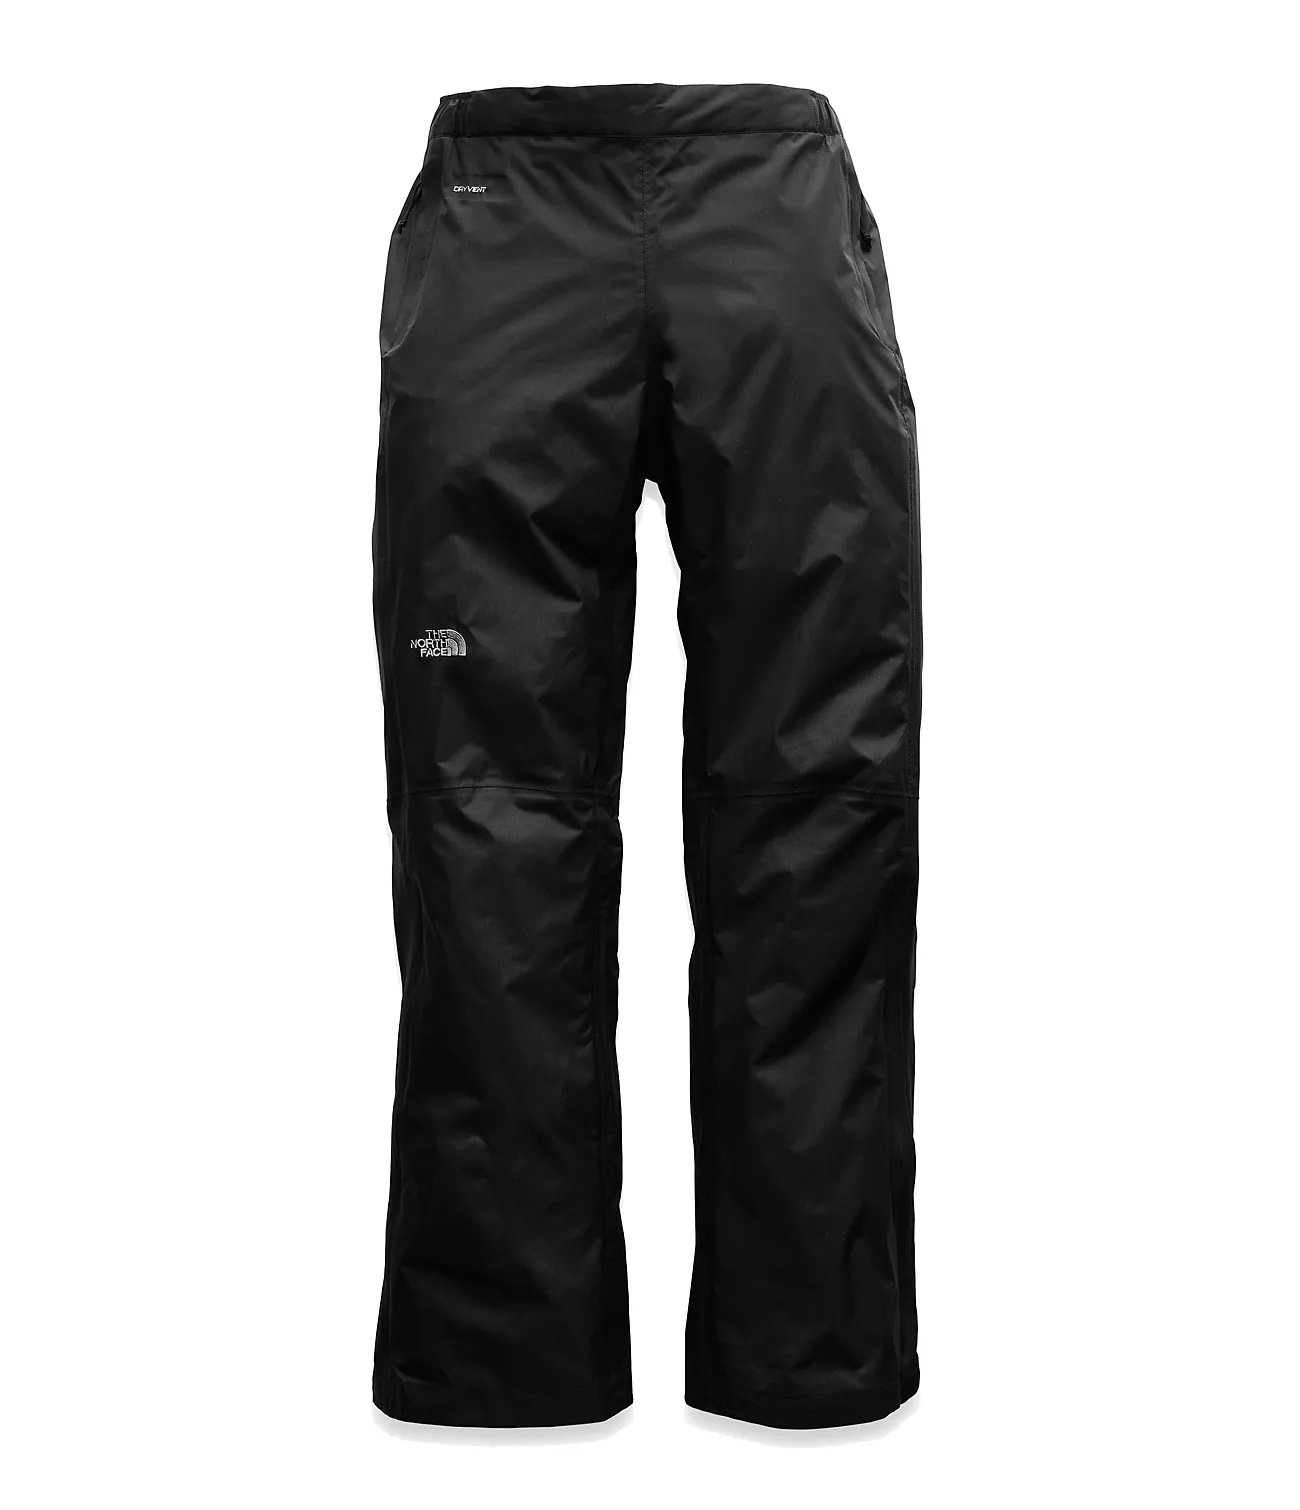 Venture 2 Snow Pants from the North Face